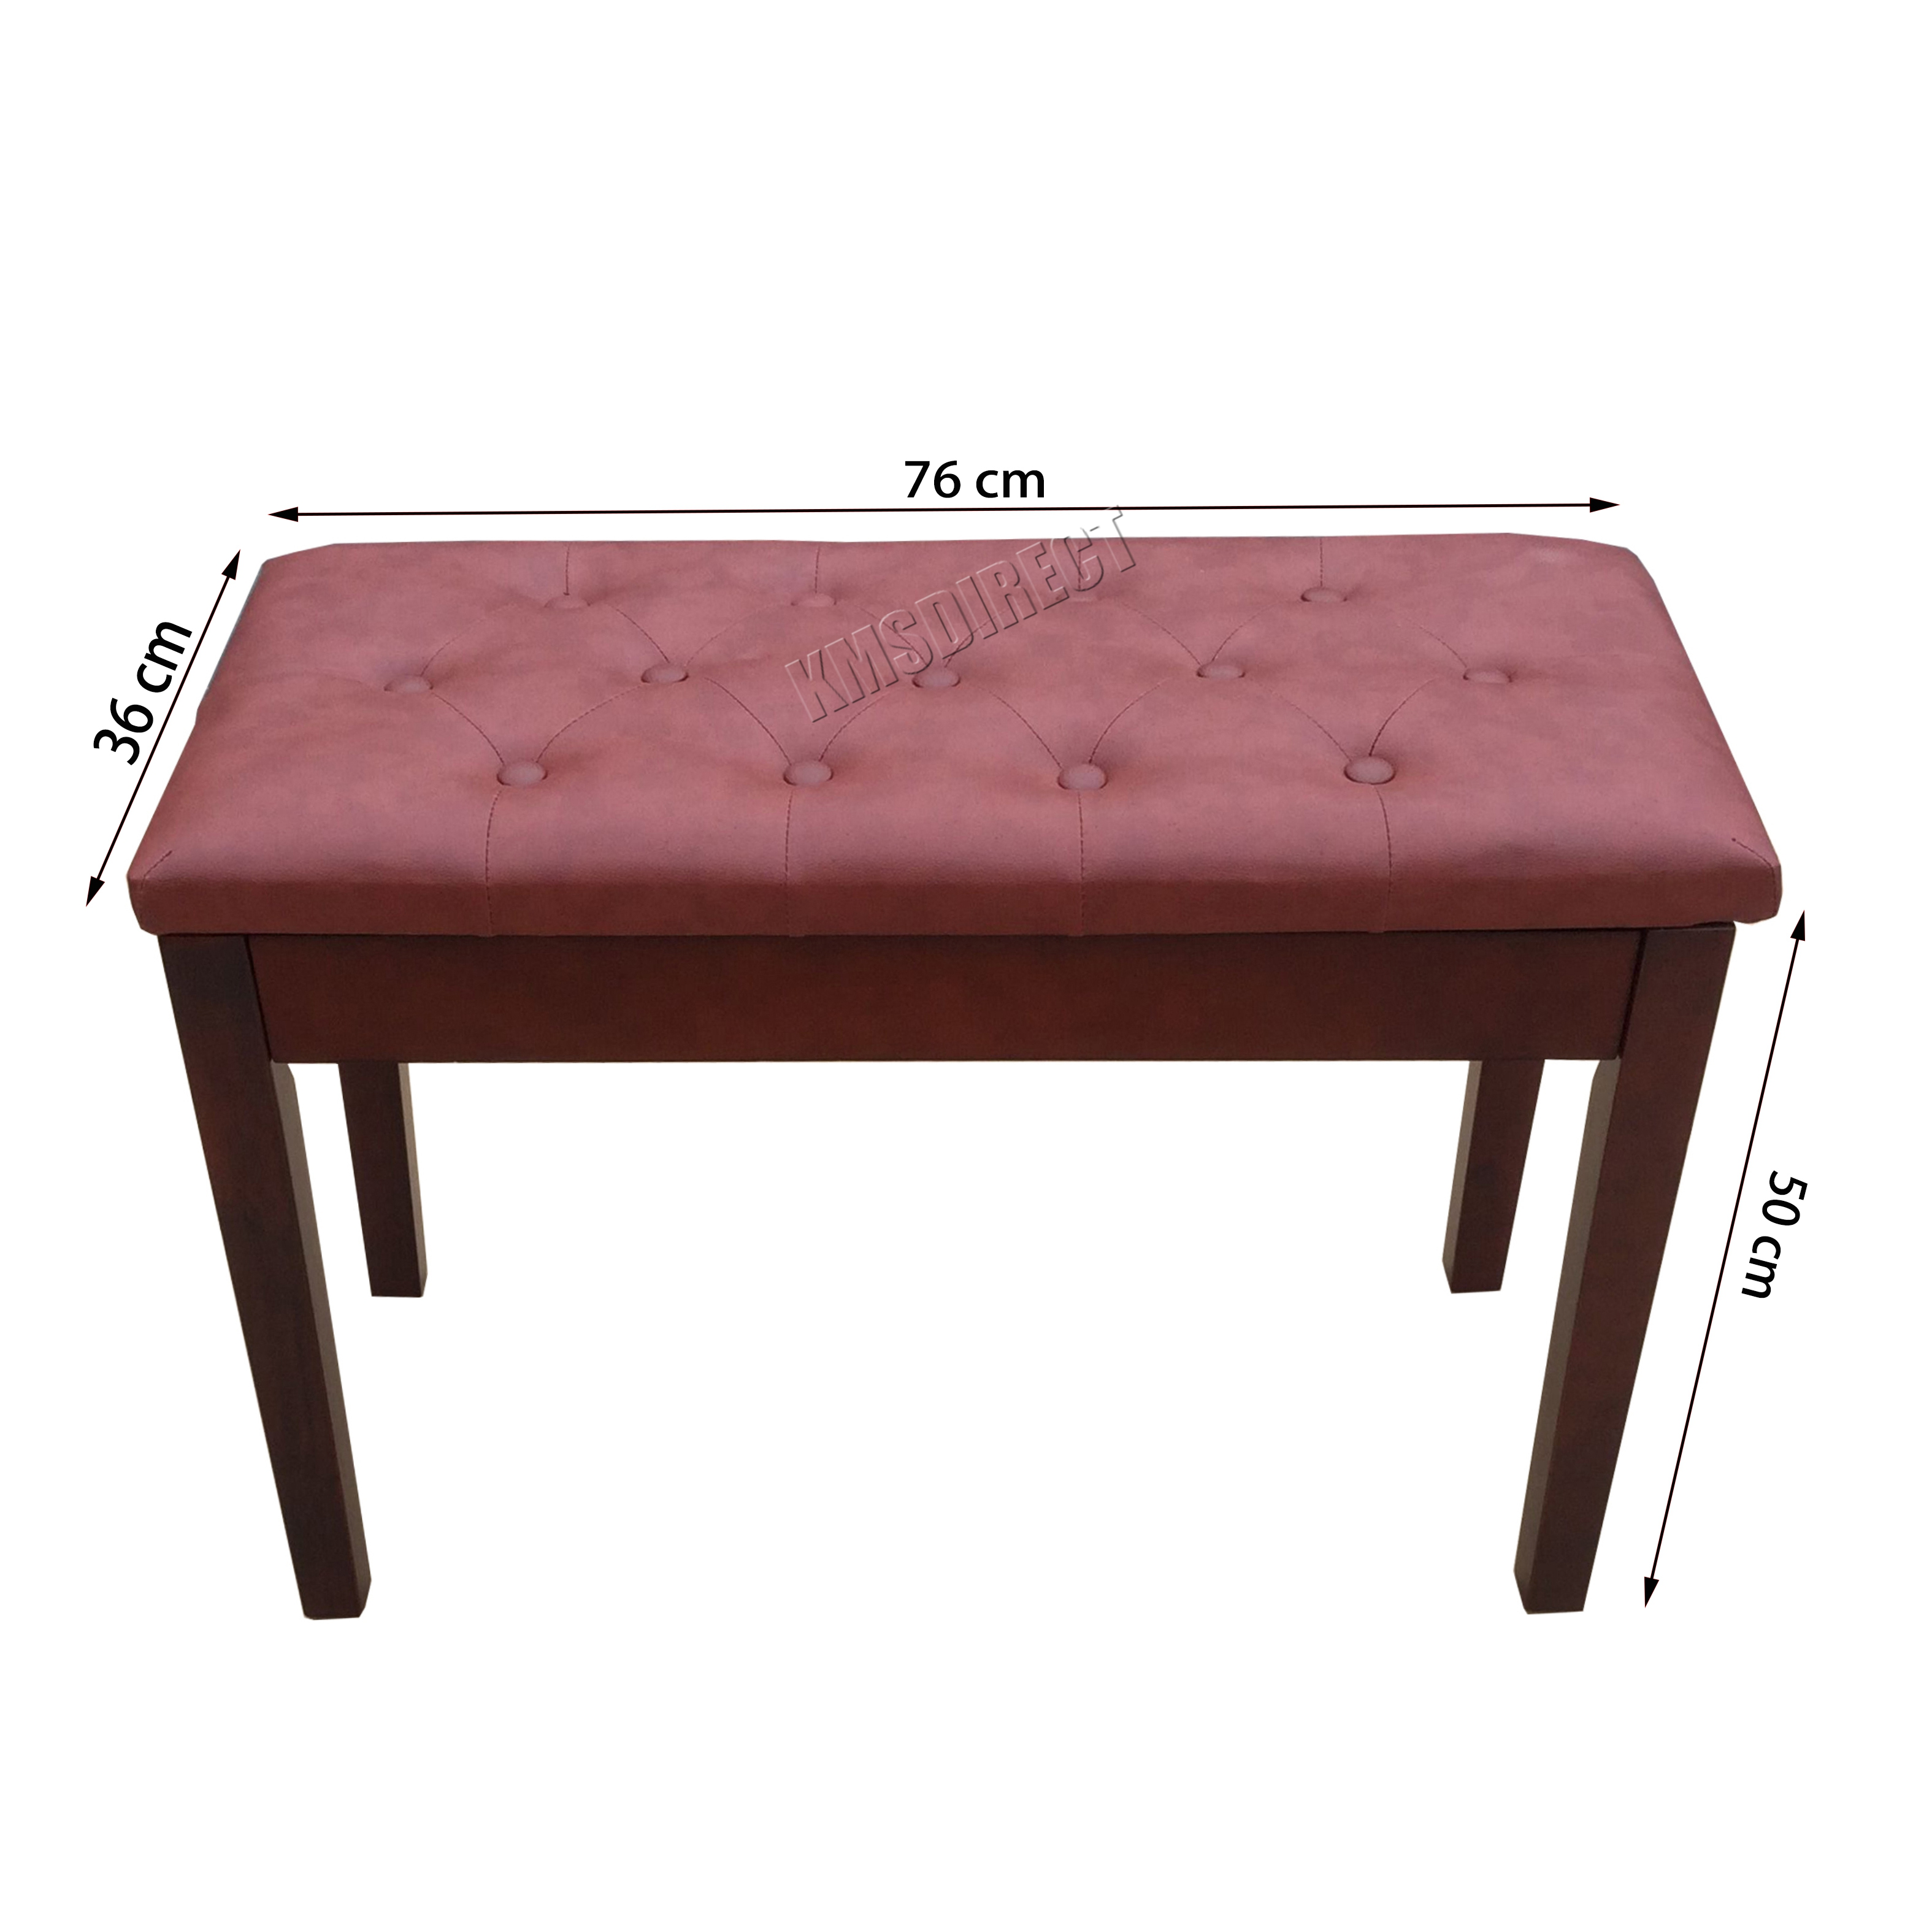 Foxhunter Wood Pu Leather Piano Duet Bench Seat Stool With